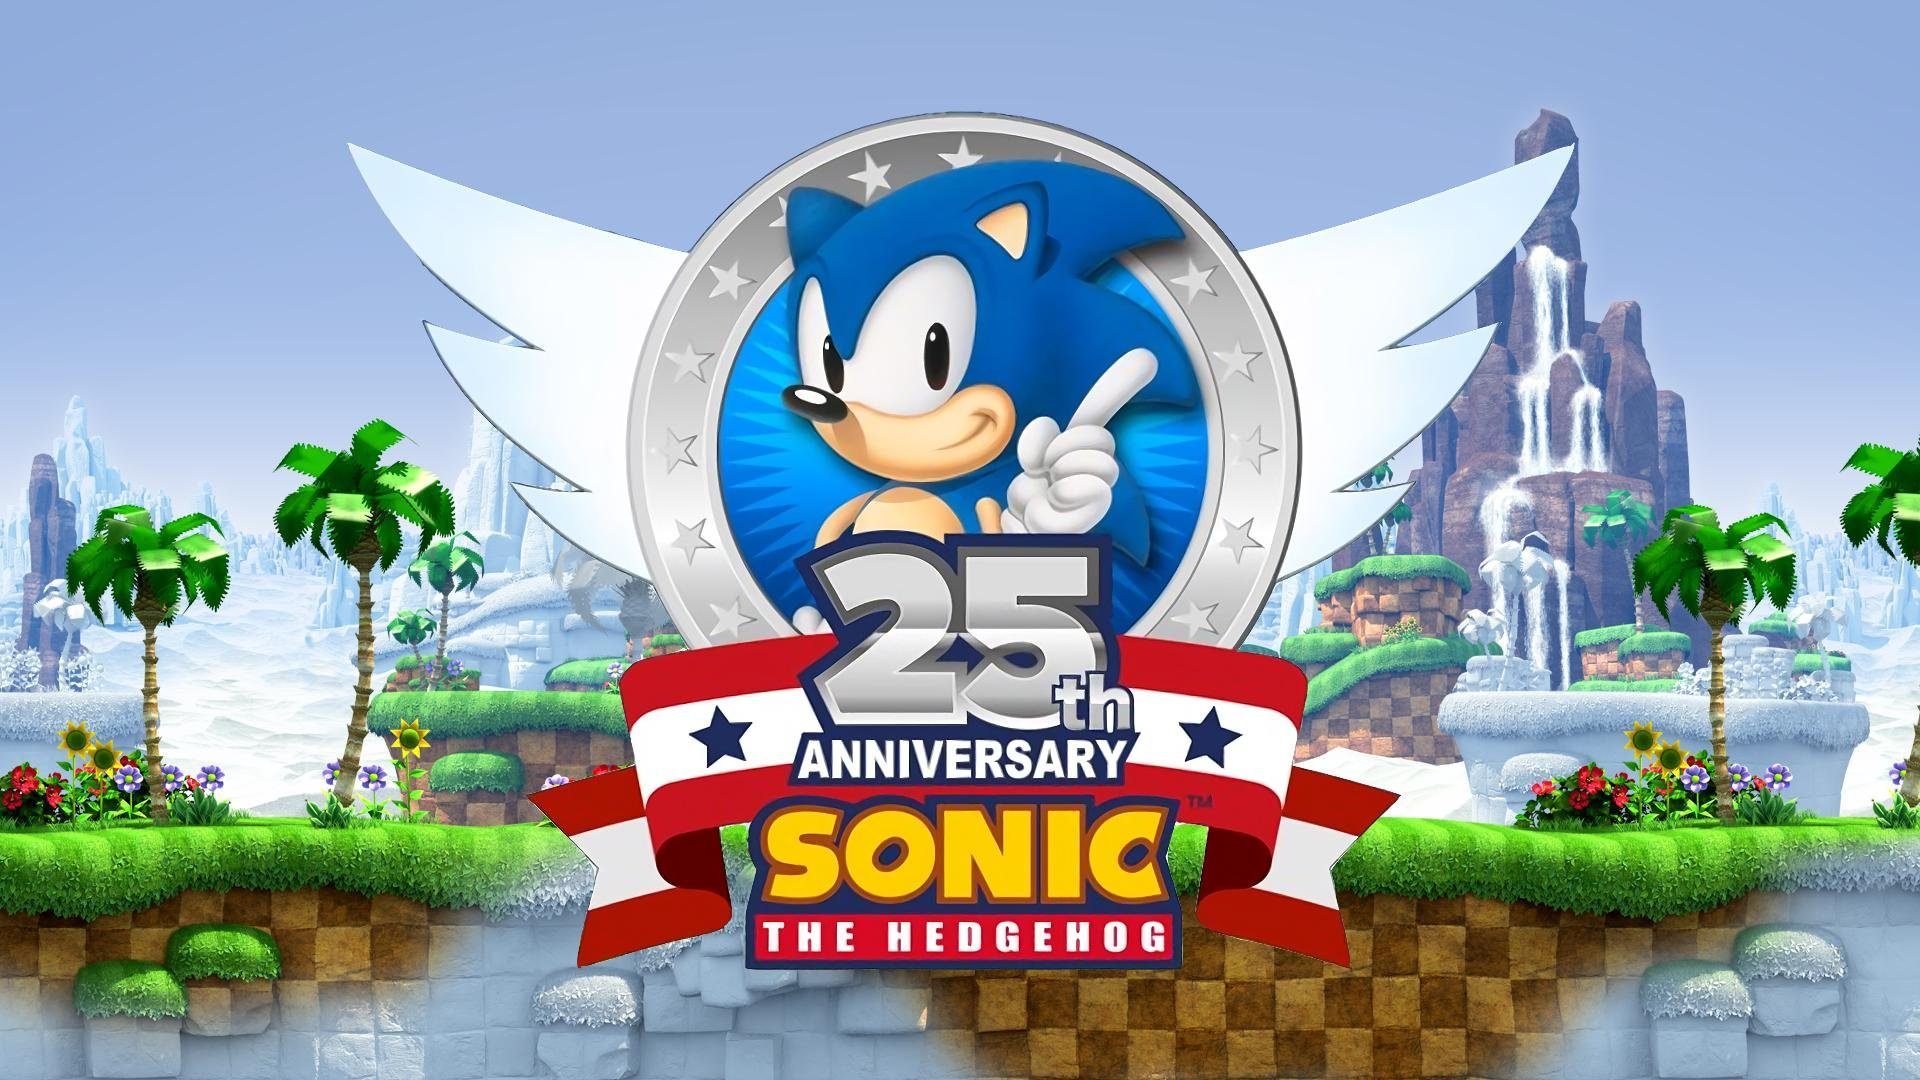 SEGA reveals new Sonic game, coming to NX in 2017